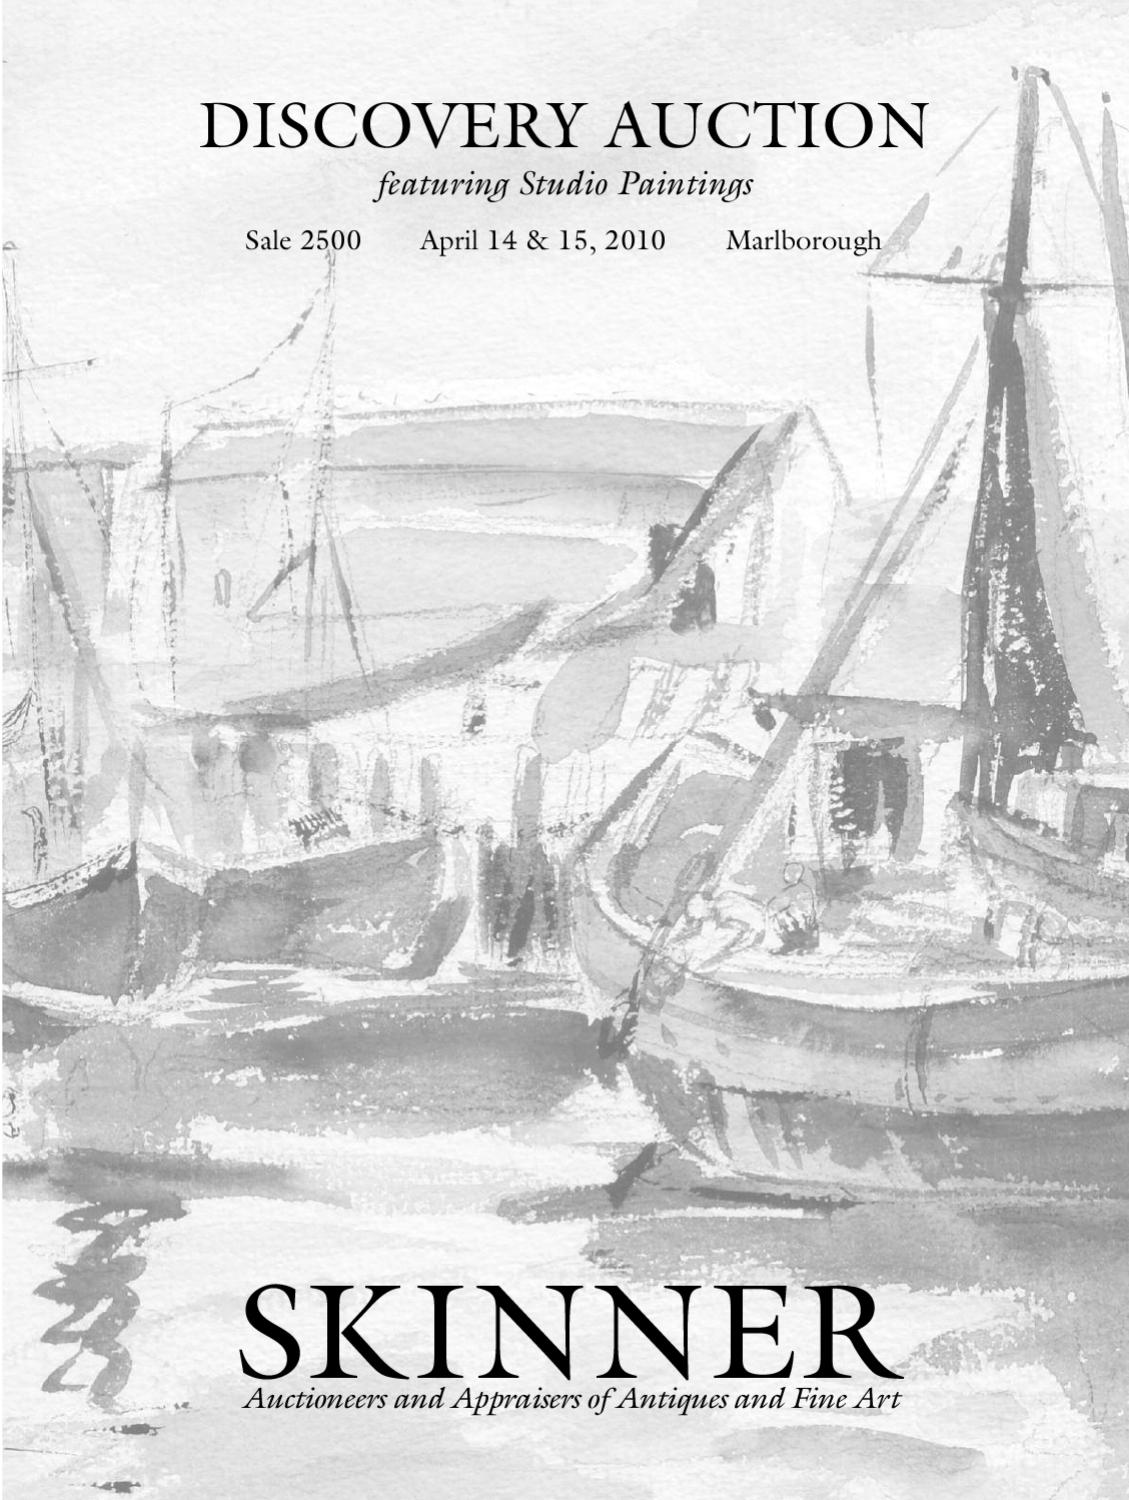 Discovery featuring studio paintings skinner auction 2500 by skinner inc issuu